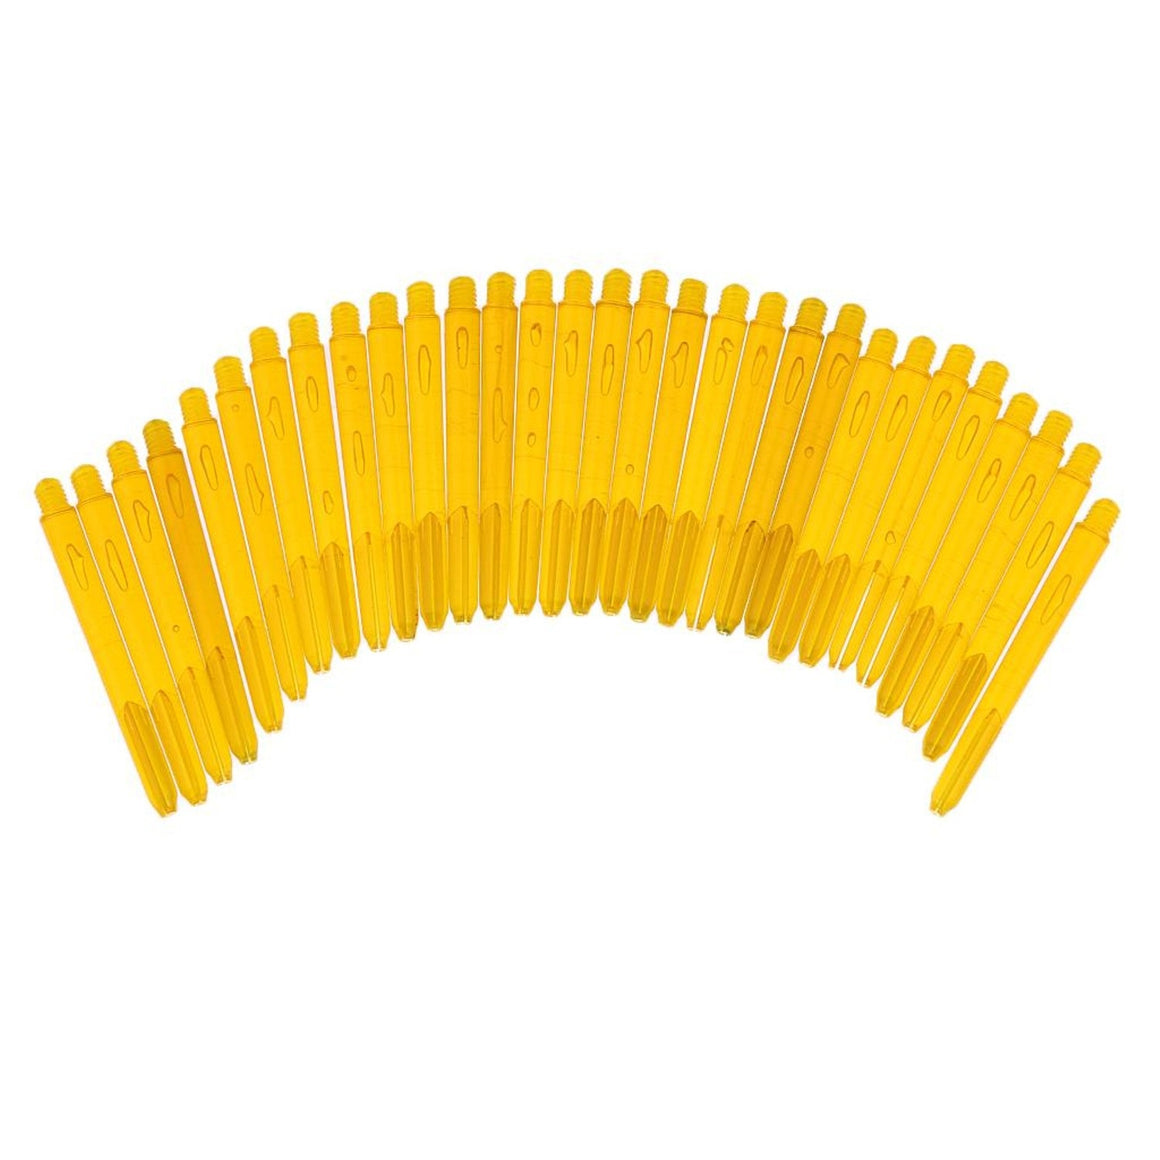 MagiDeal High Quality 30Pcs Plastic 2BA Dart Shafts Replacement Dart Stems for Soft Tip Dart and Steel Tip Dart Assorted 8 Color